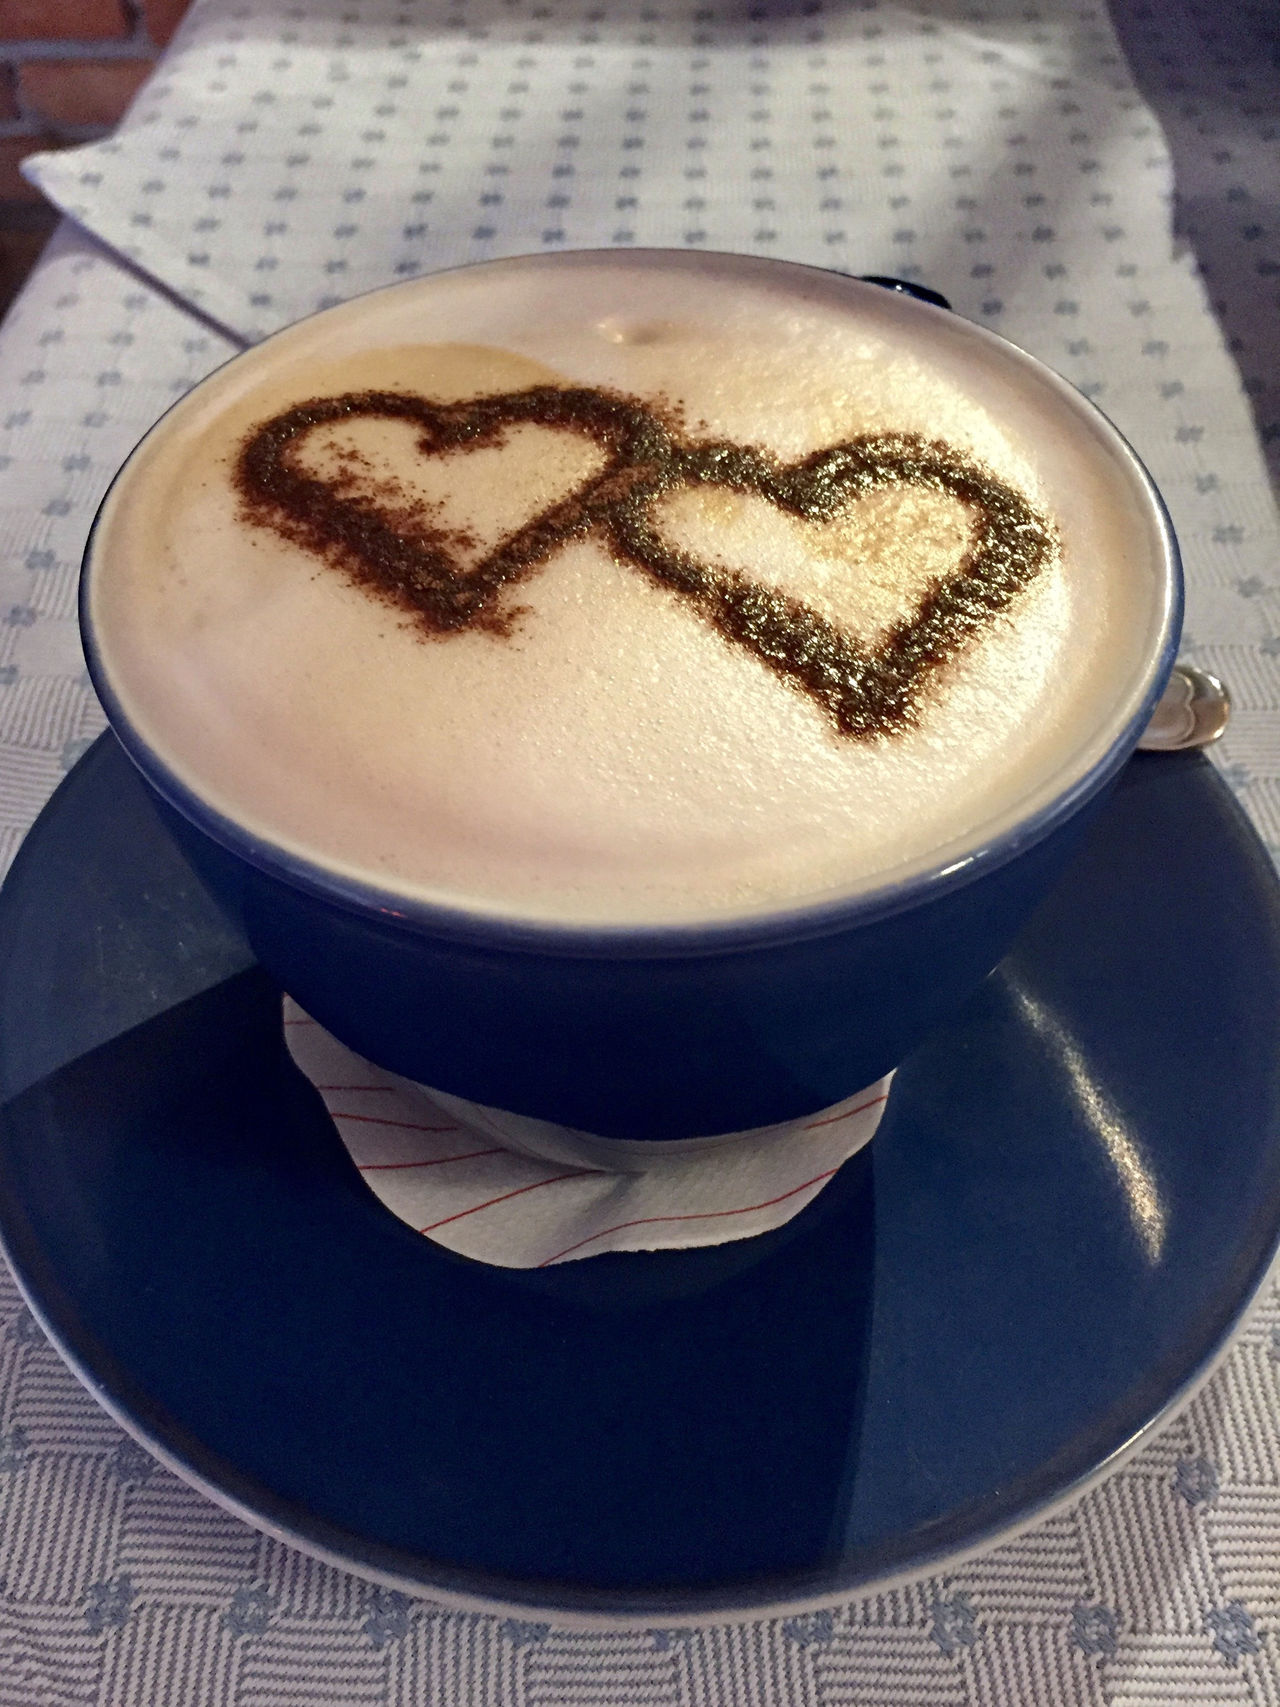 Cappuccino Cappucino Close-up Coffee - Drink Coffee Cup Cup Day Double Hearts Drink Food And Drink Freshness Froth Froth Art Frothy Drink Heart High Angle View Indoors  Latte Mocha No People Refreshment Saucer Table